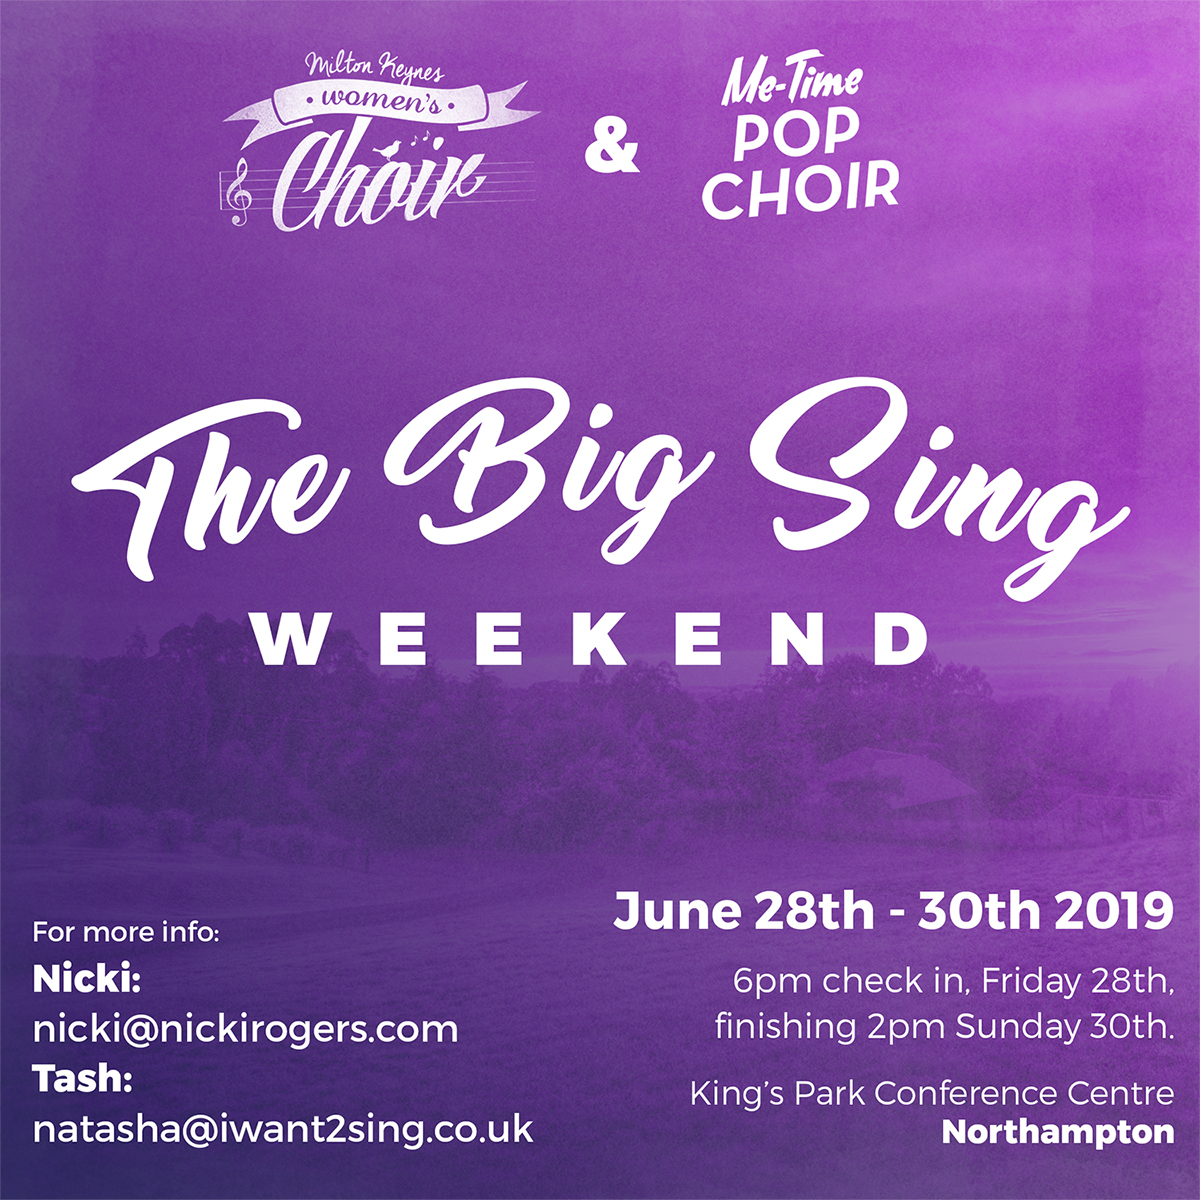 Our first ever singing residential weekend is set to take place later this year, more details below.